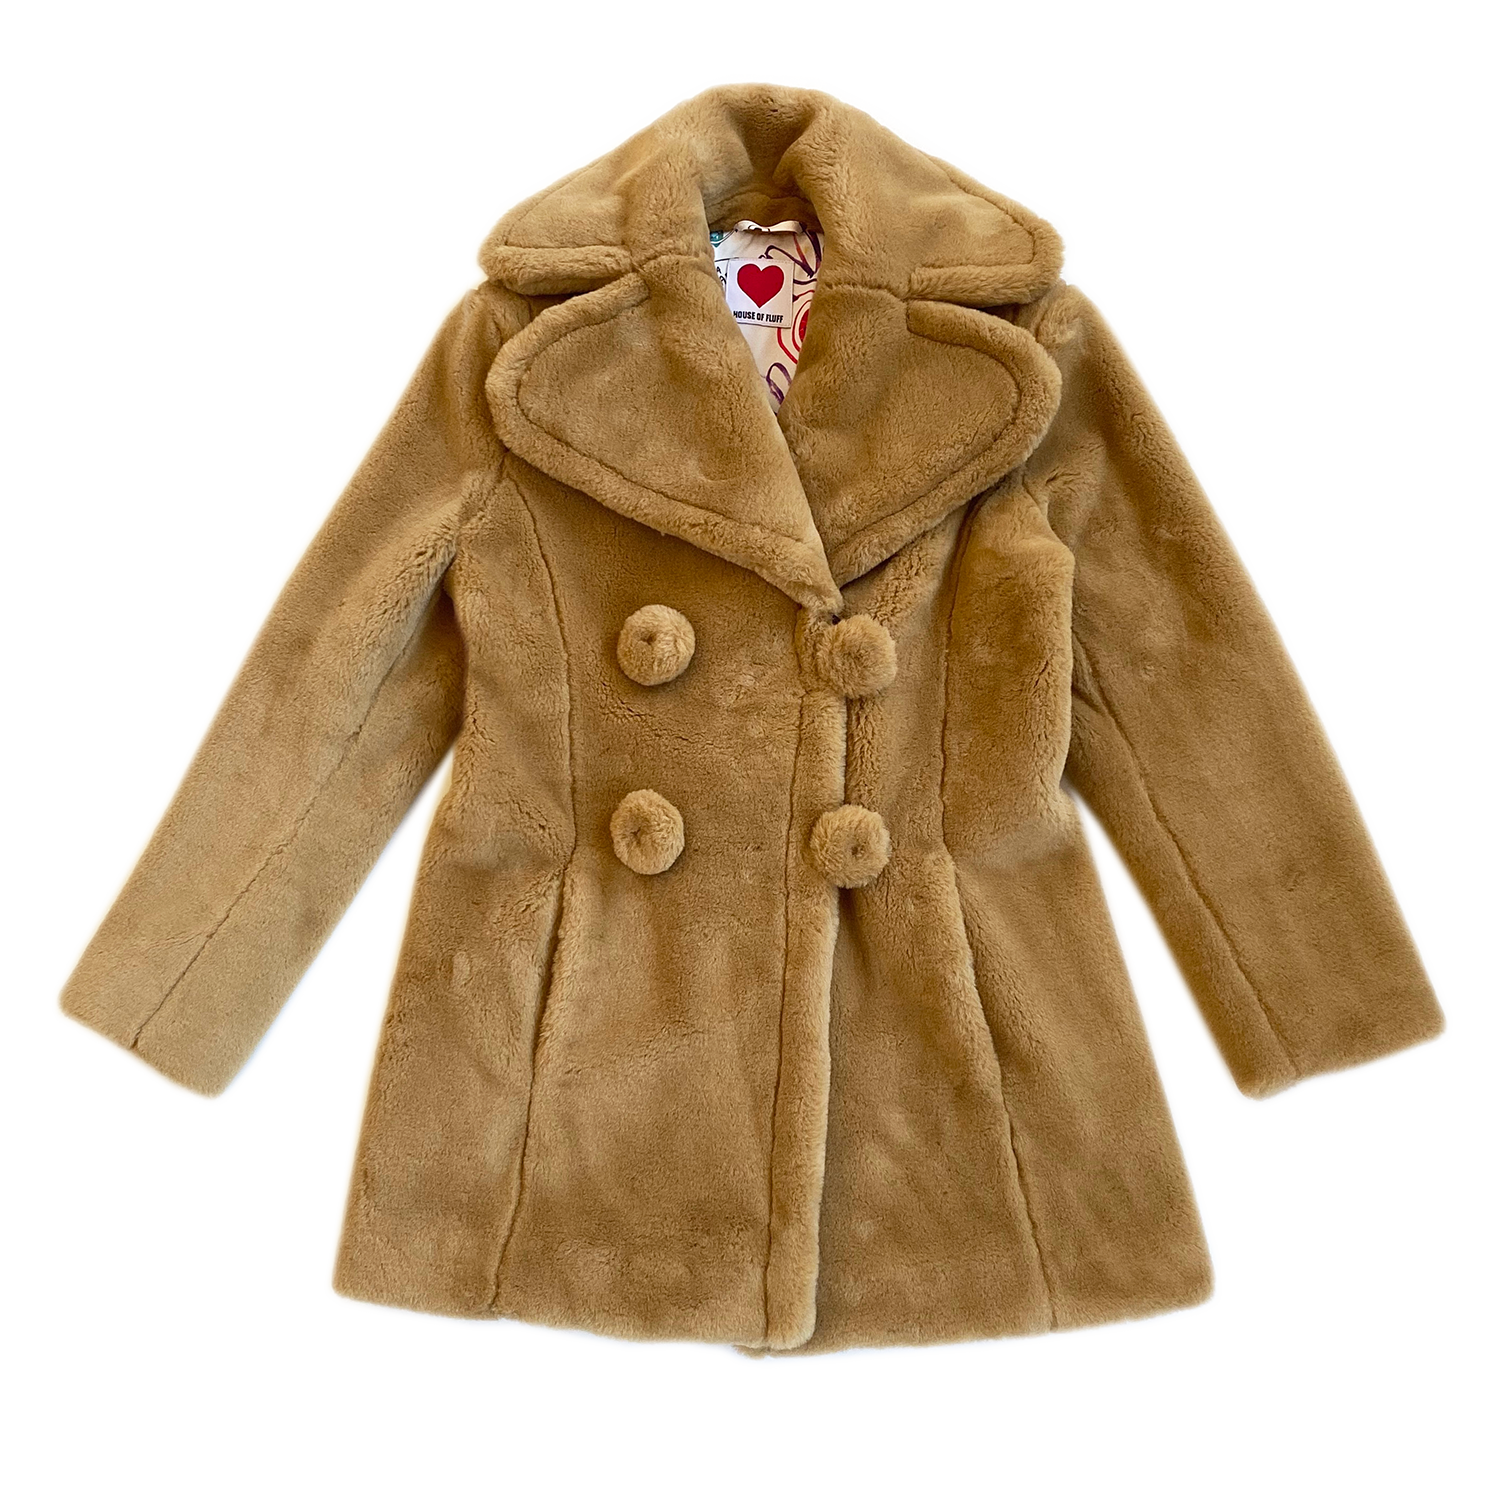 products/biofur_camelpeacoat_front.png